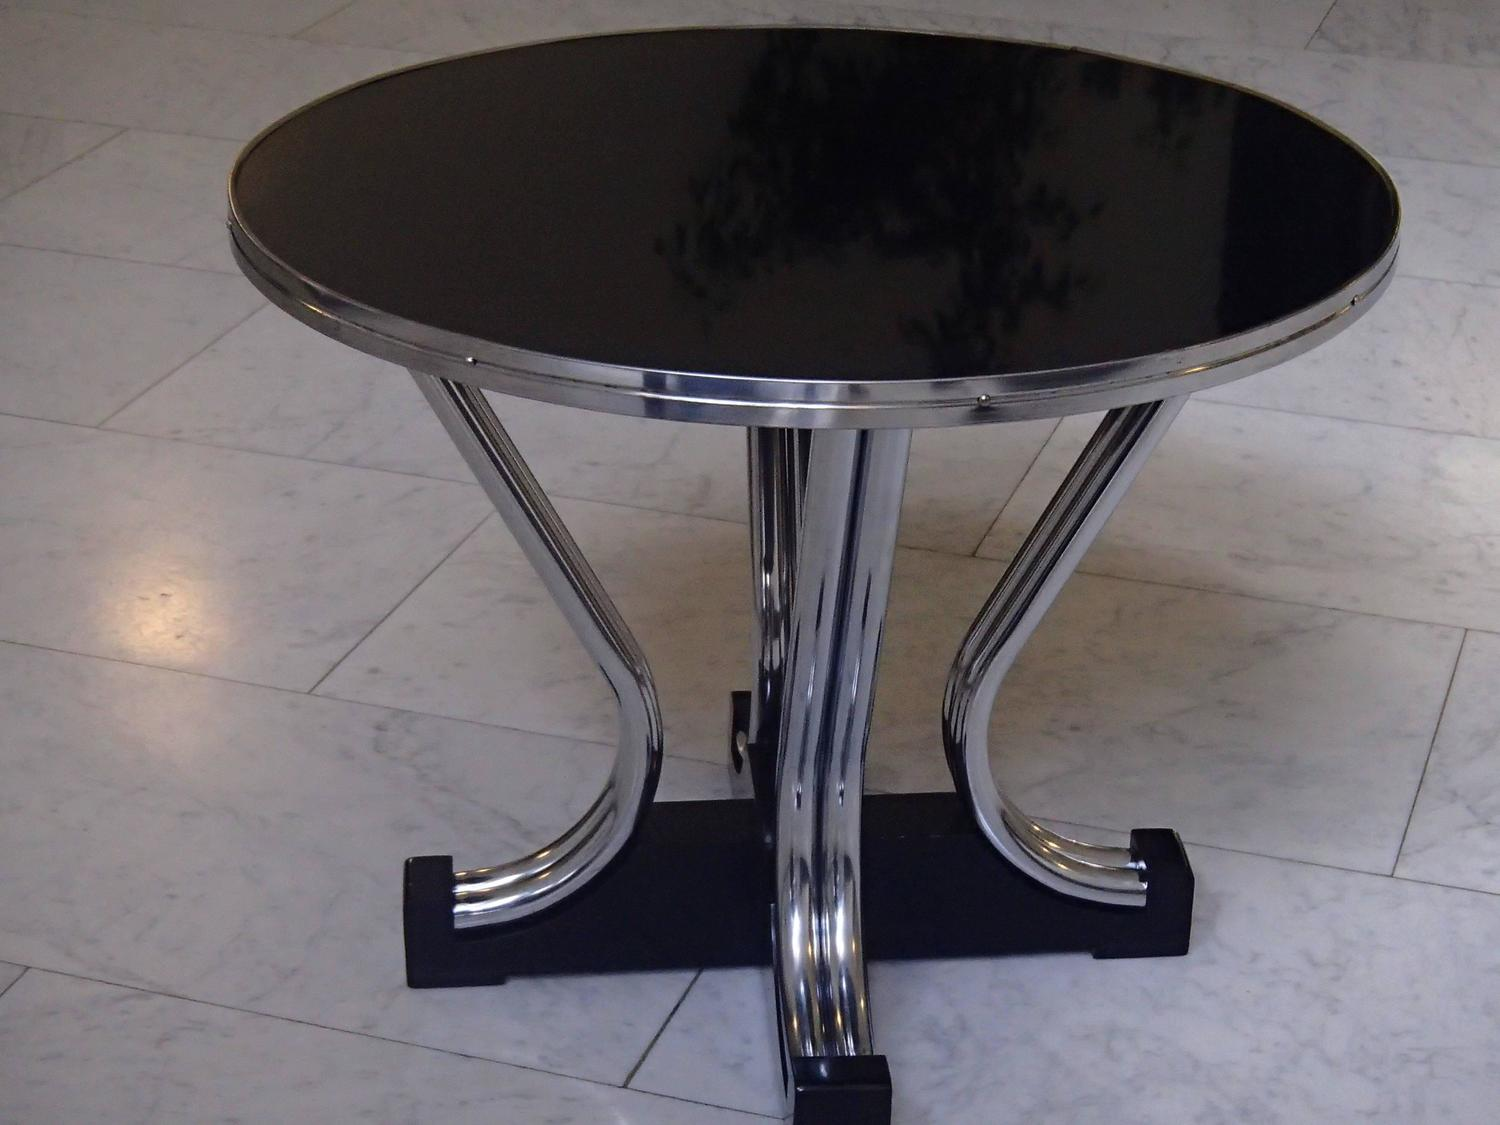 Bauhaus round coffee table chrome and black for sale at 1stdibs Black and chrome coffee table